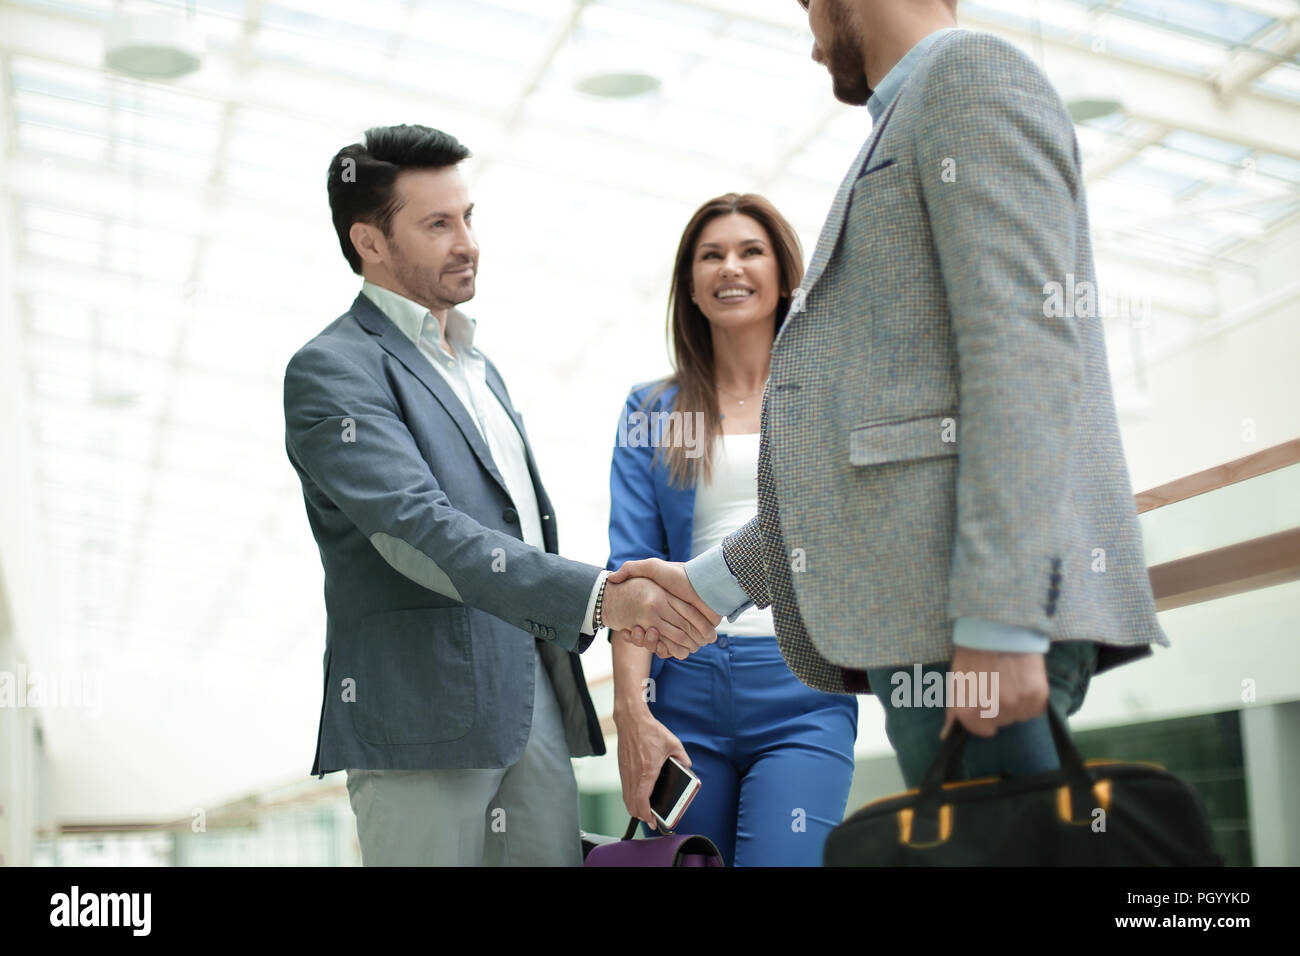 People Greet Each Other Stock Photos People Greet Each Other Stock